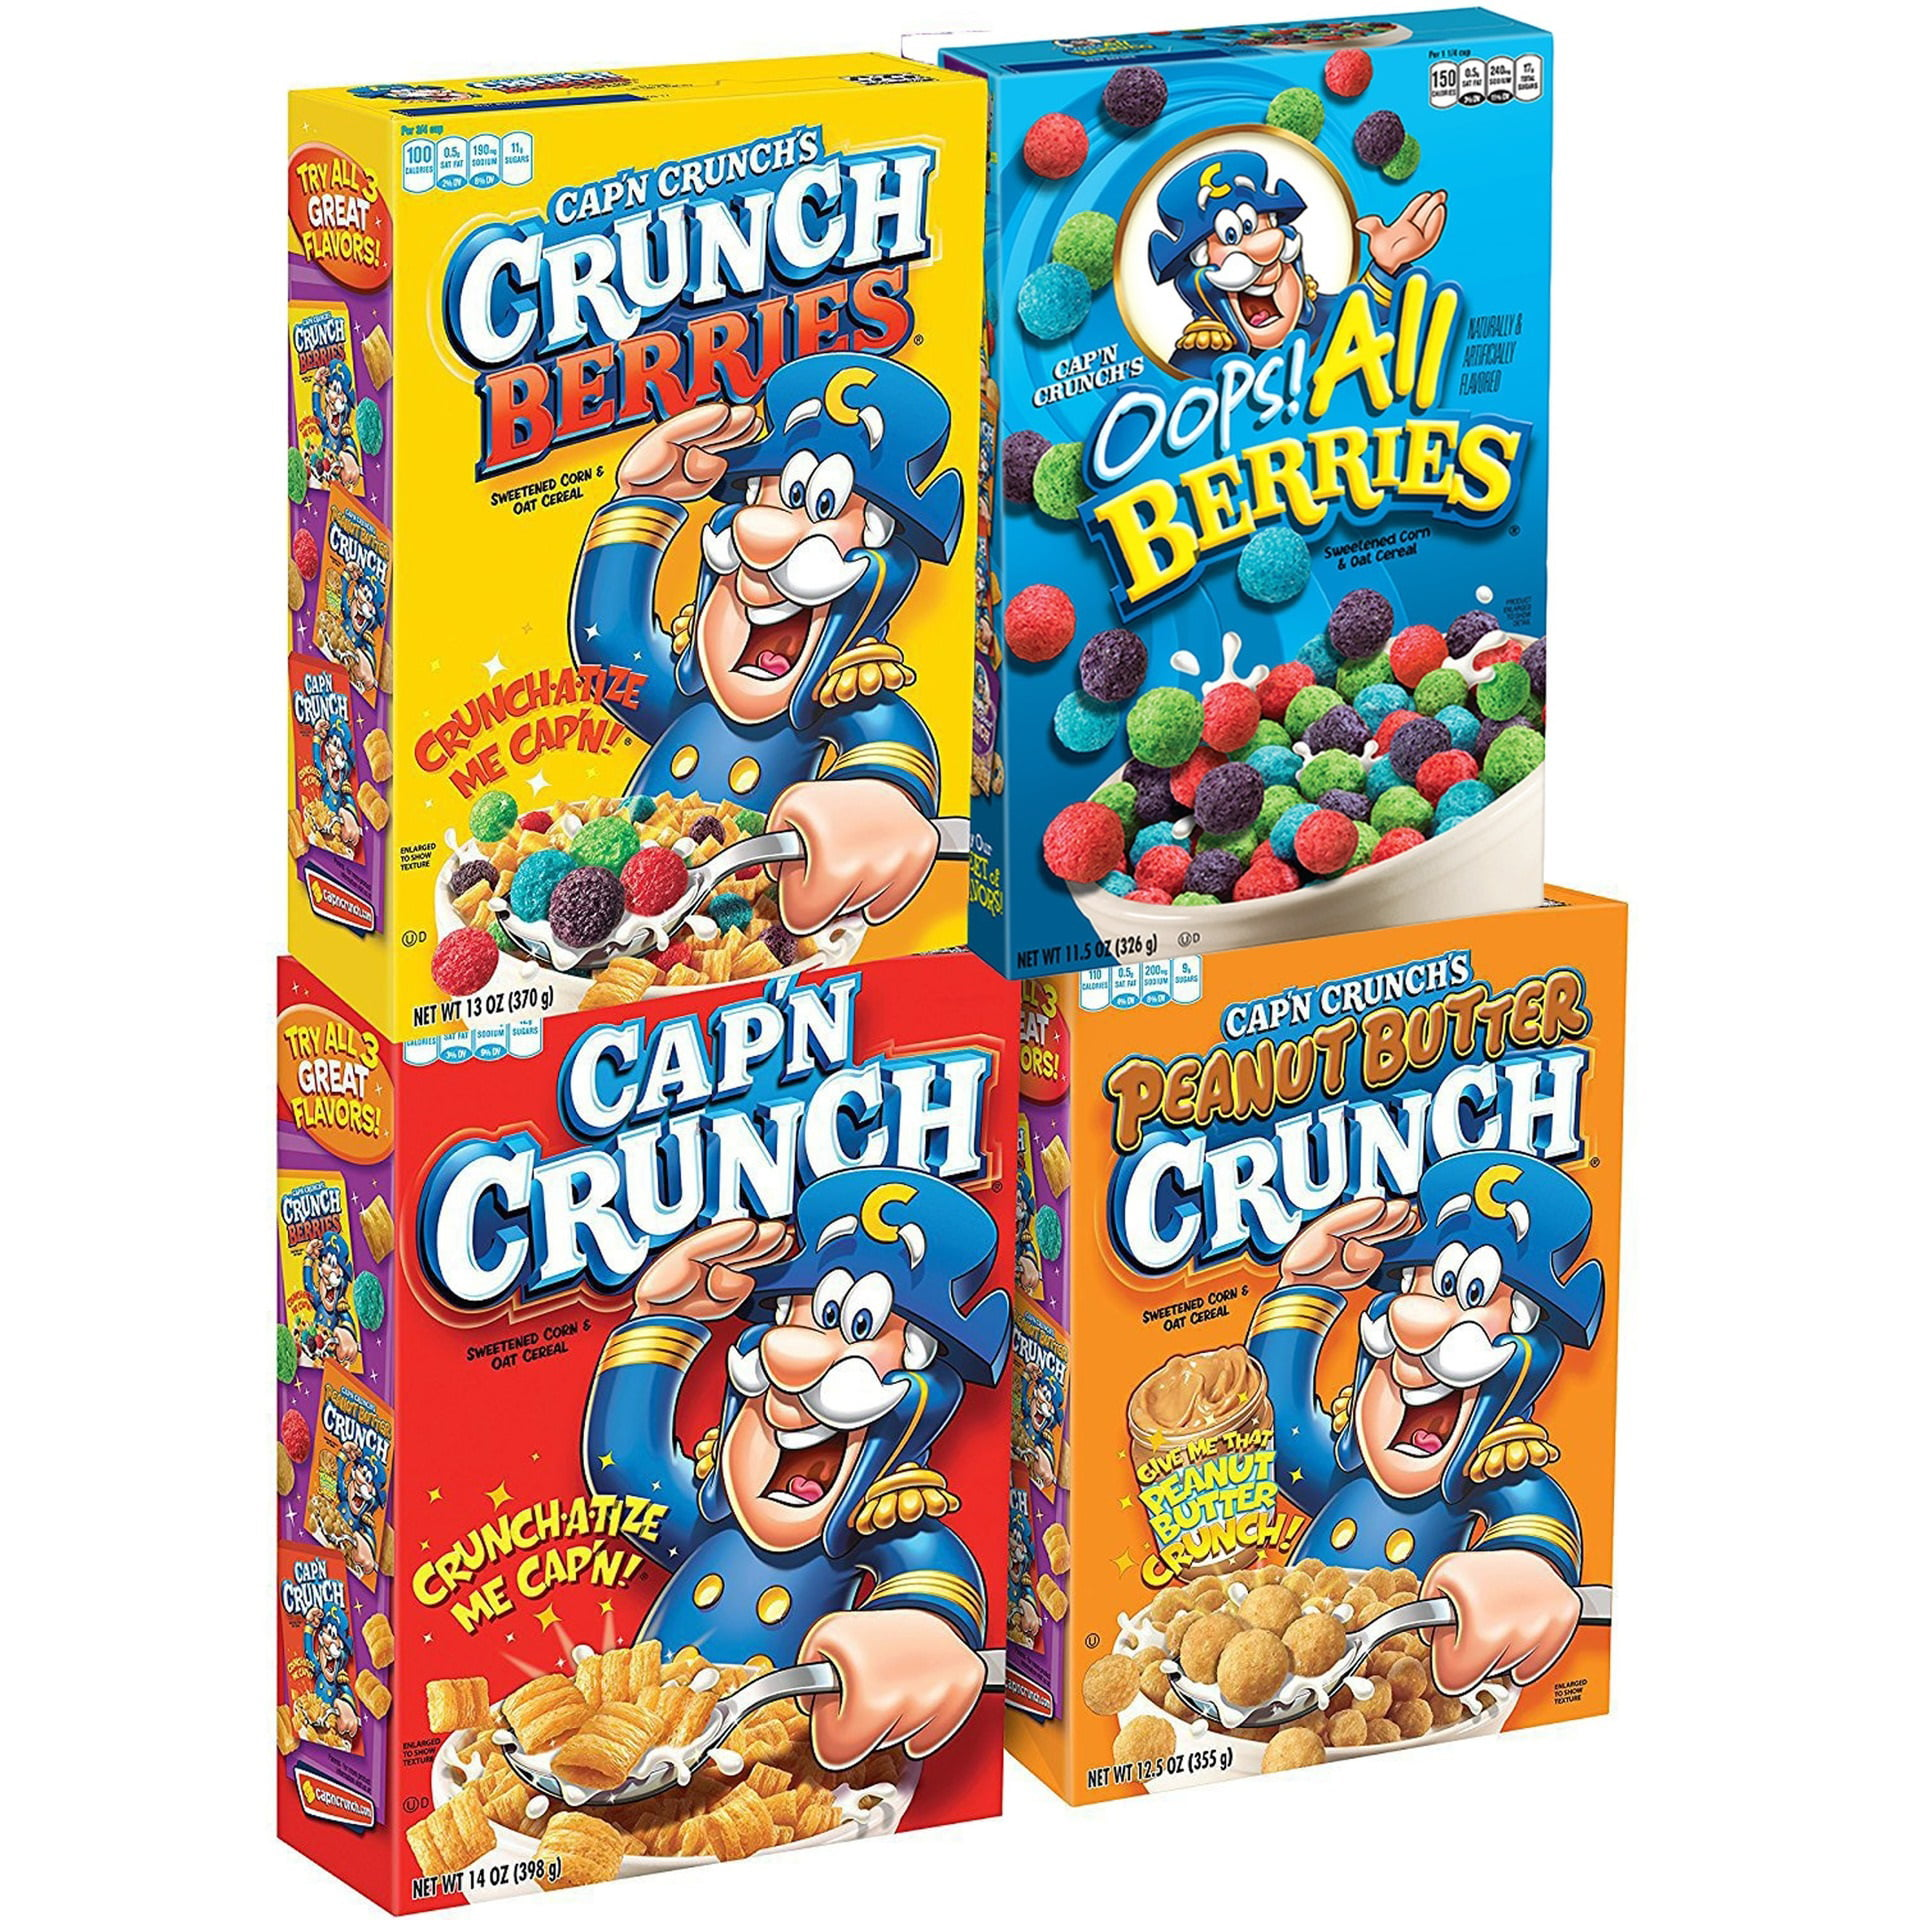 Cap N Crunch Breakfast Cereal Variety Pack 4 Boxes 1 Original 1 Oops All Berries 1 Crunch Berries 1 Peanut Butter Crunch Walmart Com Walmart Com You'd need to walk 36 minutes to burn 130 calories. cap n crunch breakfast cereal variety pack 4 boxes 1 original 1 oops all berries 1 crunch berries 1 peanut butter crunch walmart com